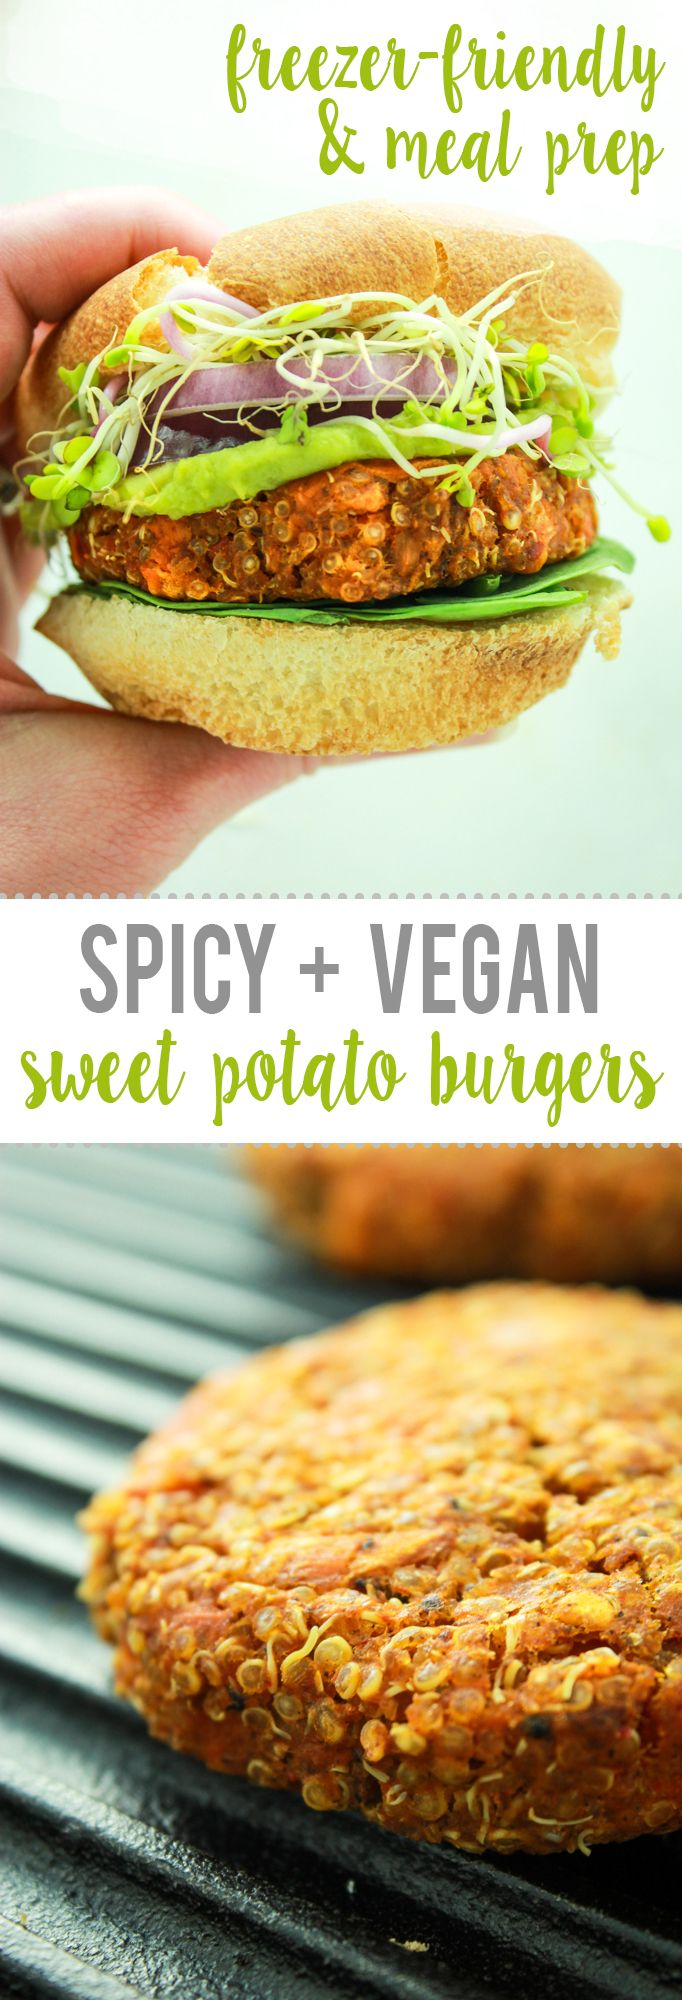 Spicy Sweet Potato Burgers – The PERFECT sweet potato burger. Prep takes 20 minutes, then bake and eat. OR – make in batches and freeze for later!